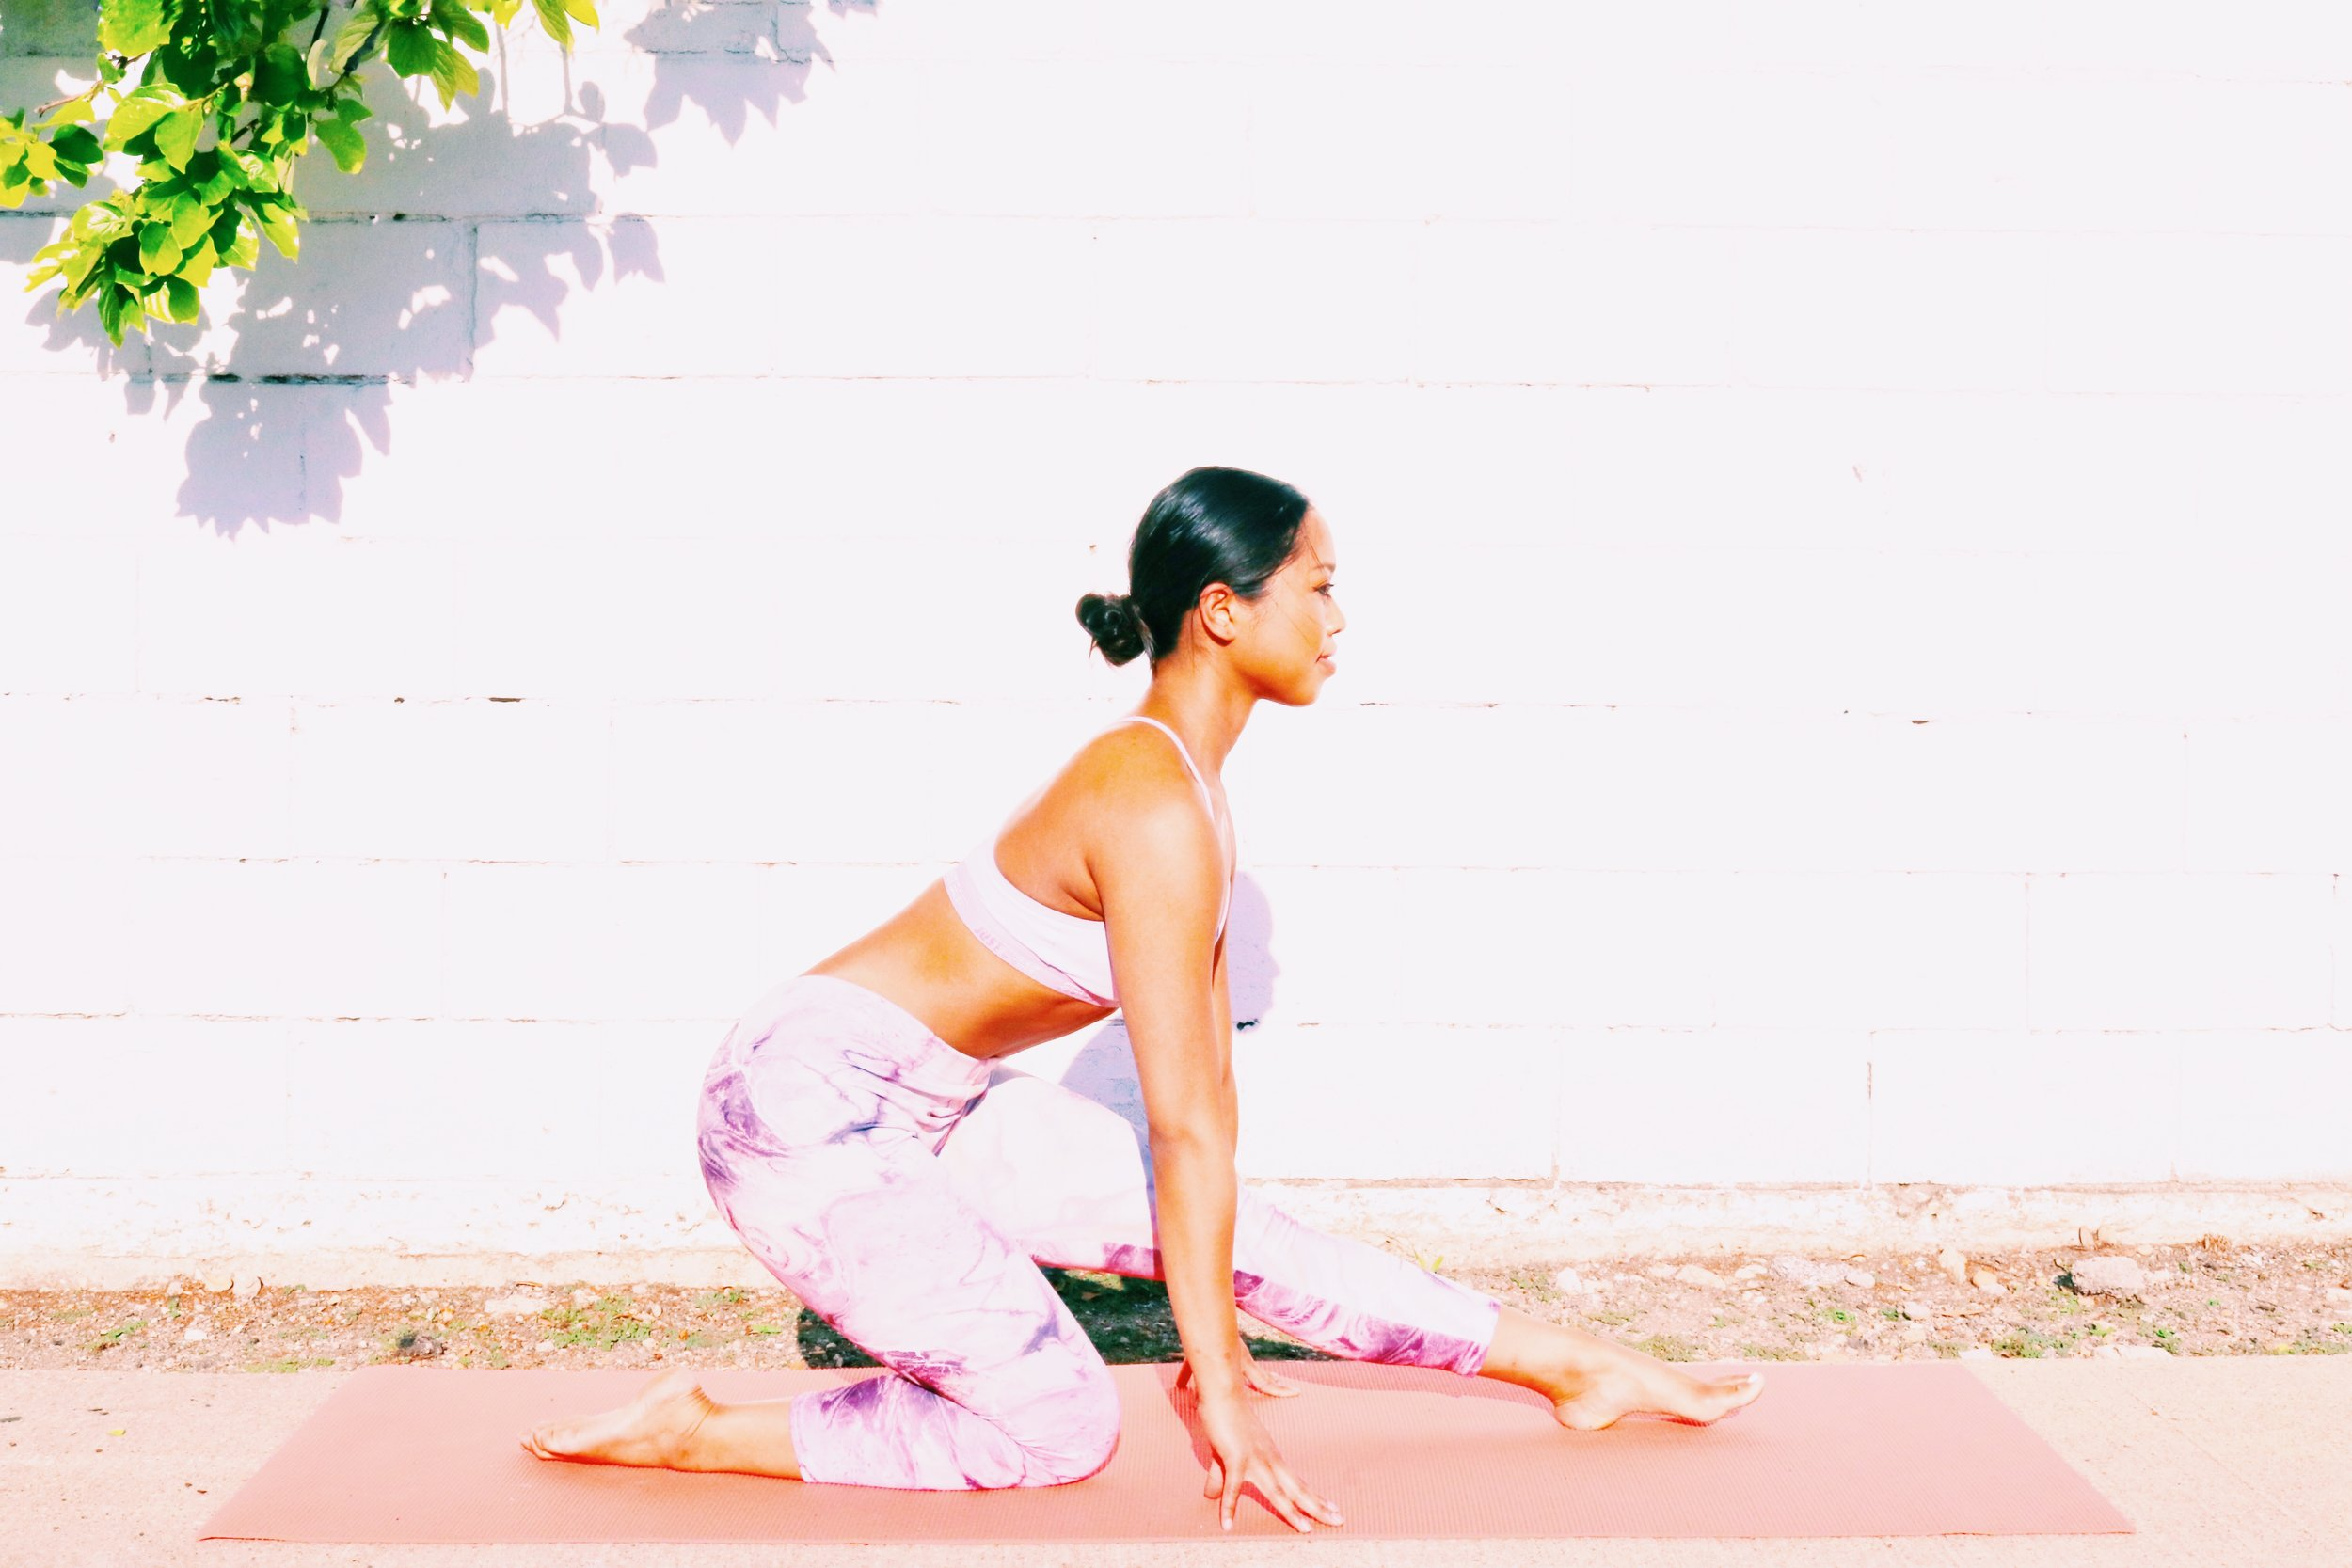 NOW SHIFT THE HIPS BACK TOWARDS YOUR RIGHT FOOT. SET YOUR HANDS TO THE MAT FOR BALANCE. -